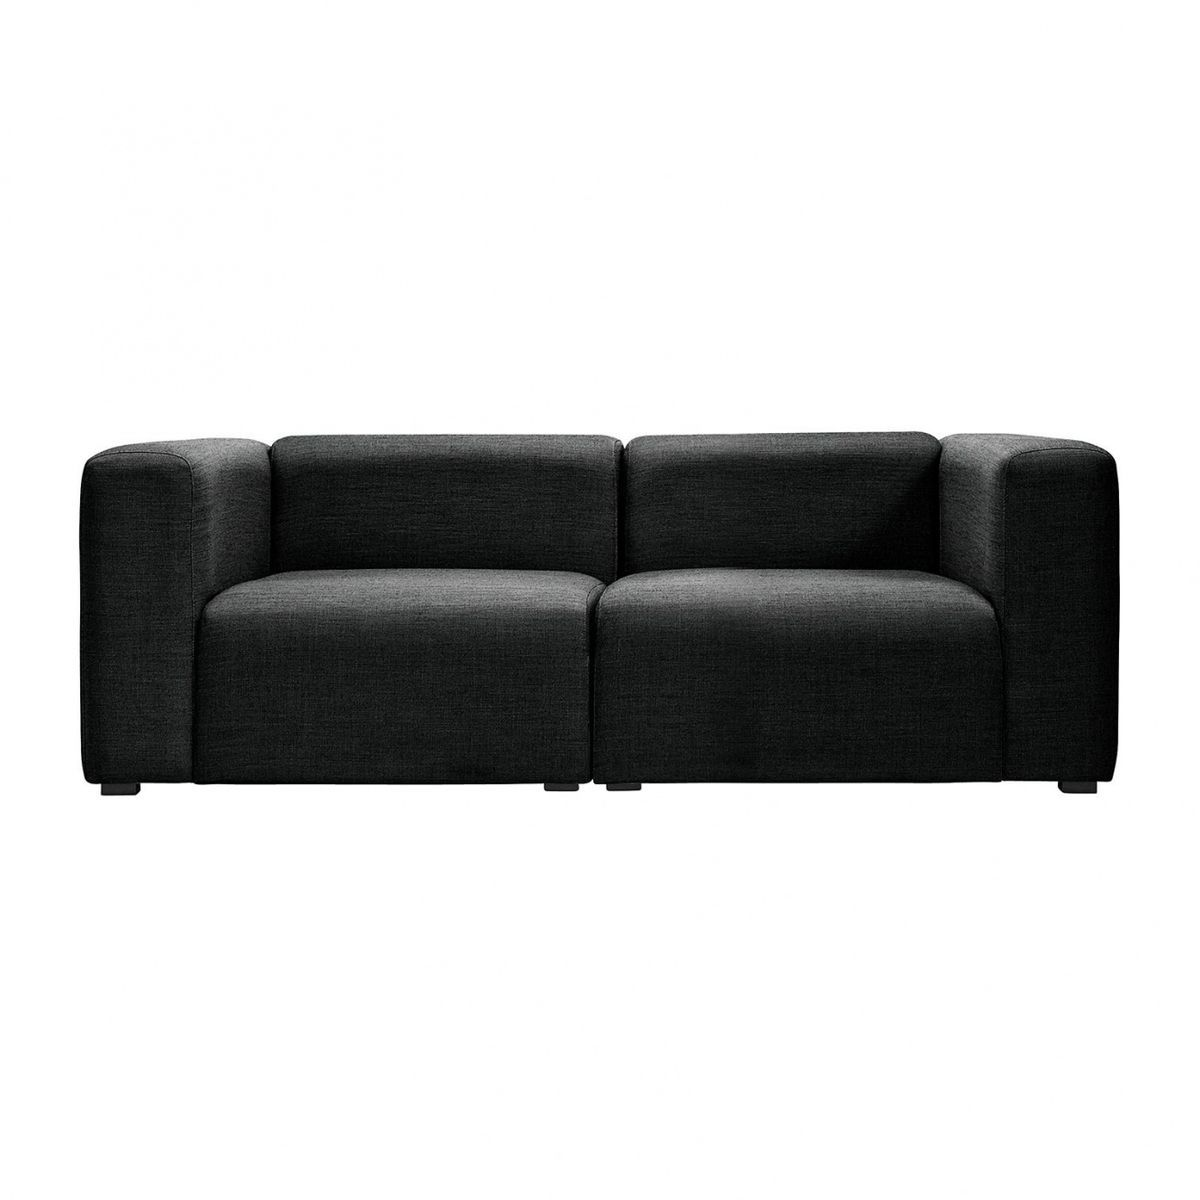 Sofa stoff  Mags 2-Sitzer Sofa Stoff Surface | HAY | AmbienteDirect.com